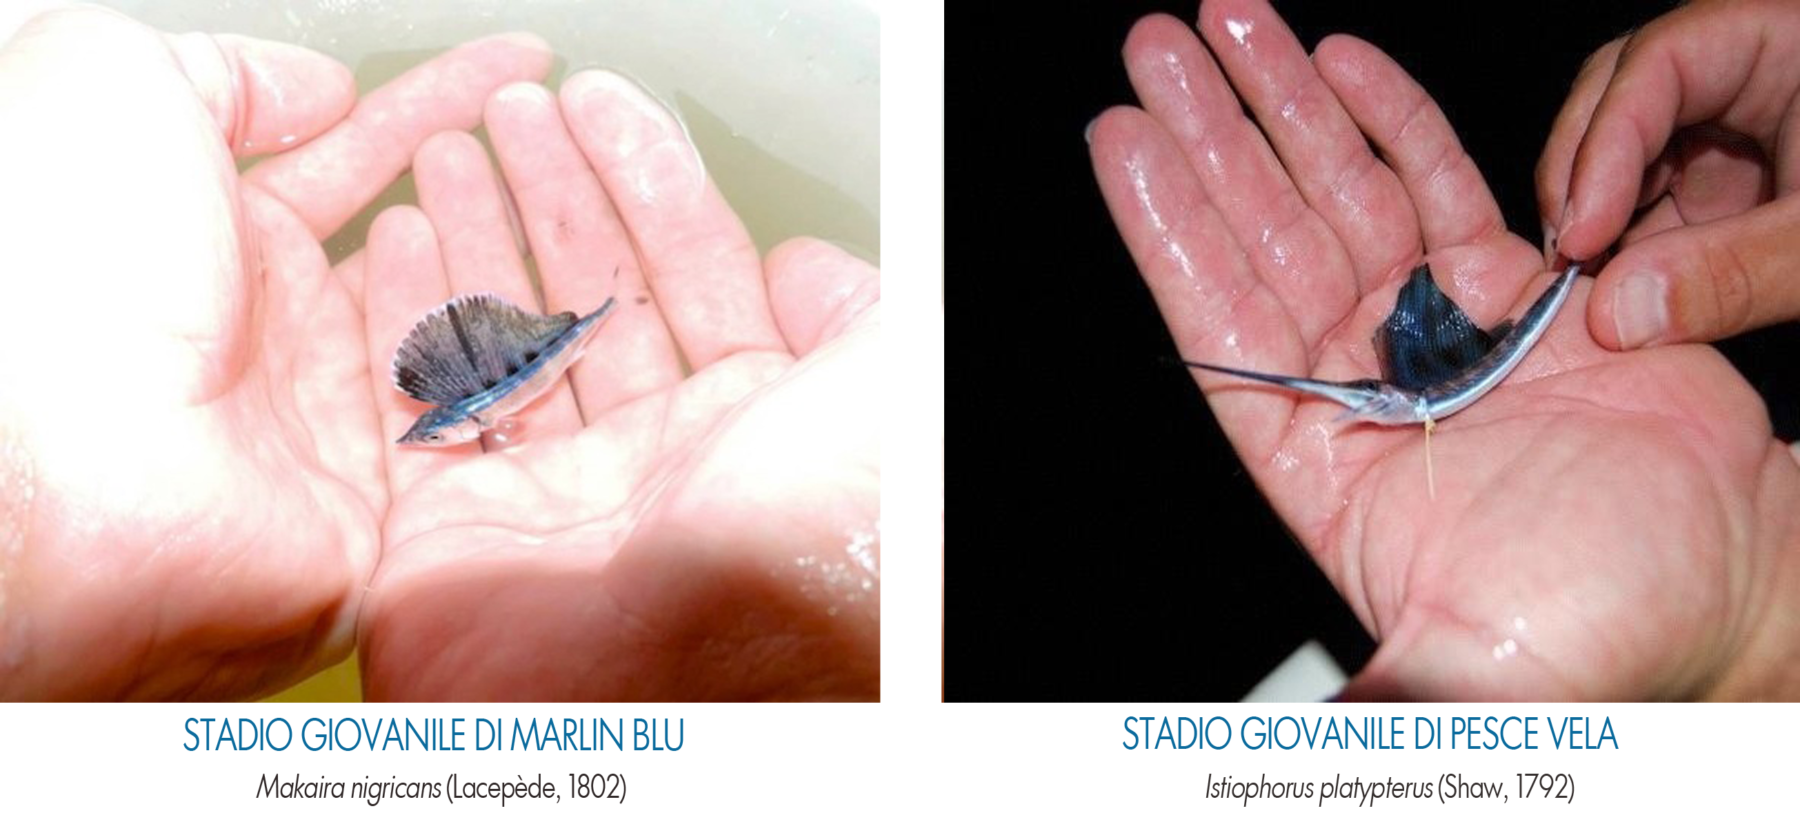 differenza tra marlin blu e pesce vela